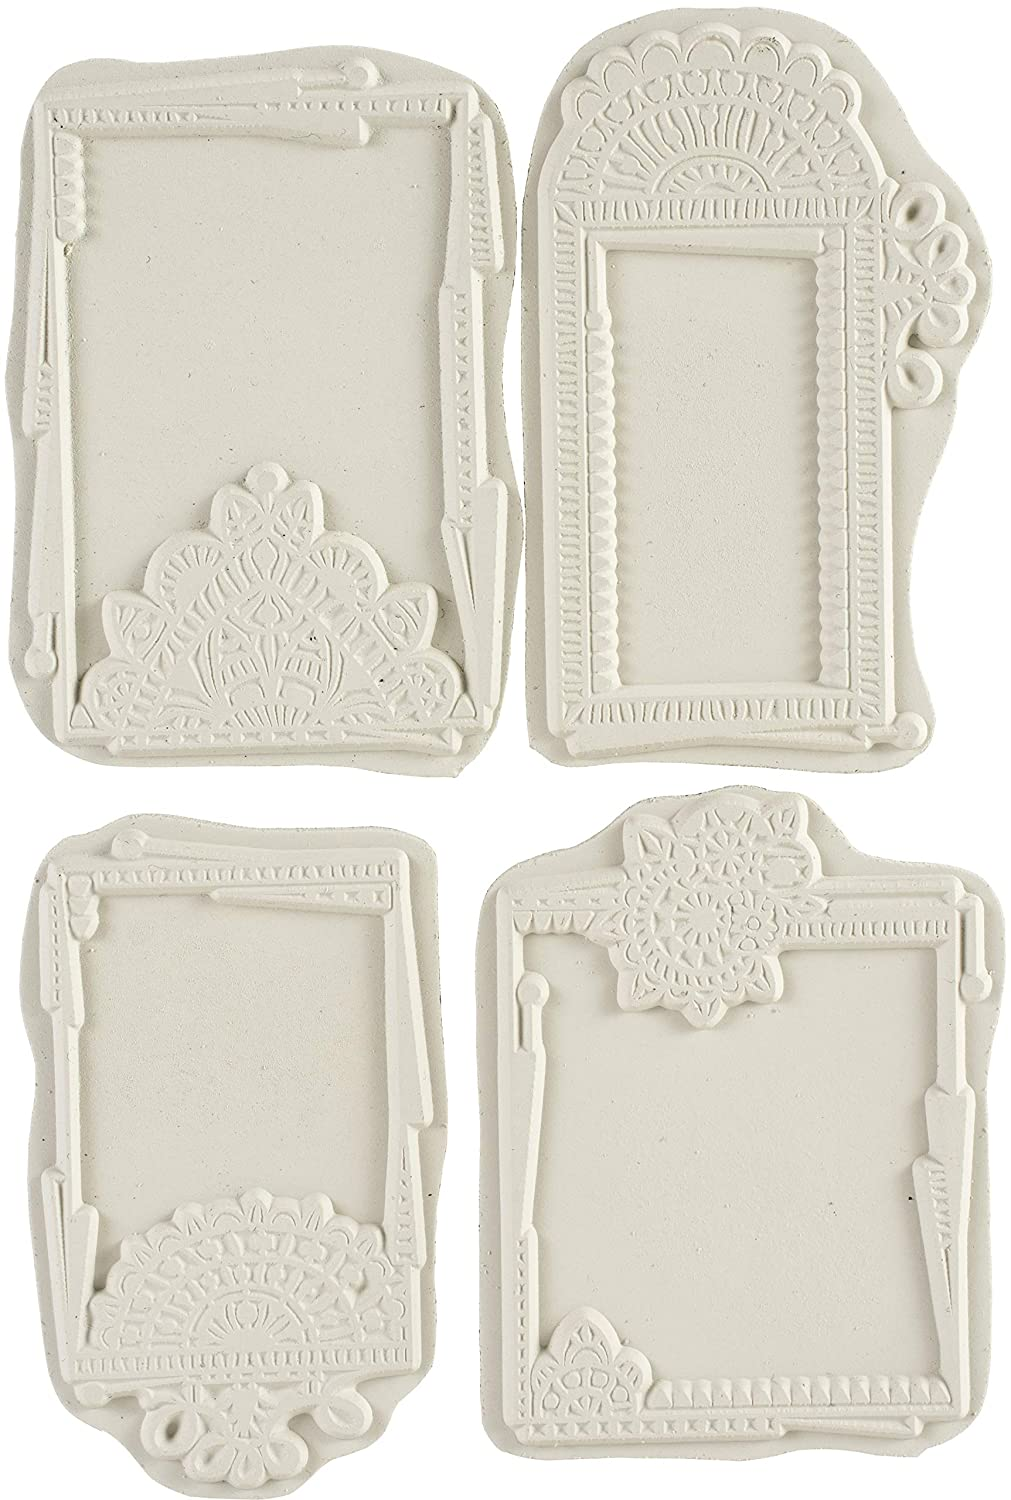 us:one Size Carabelle Studio SA60408 Cling Stamp A6 by Azoline-Openwork Labels